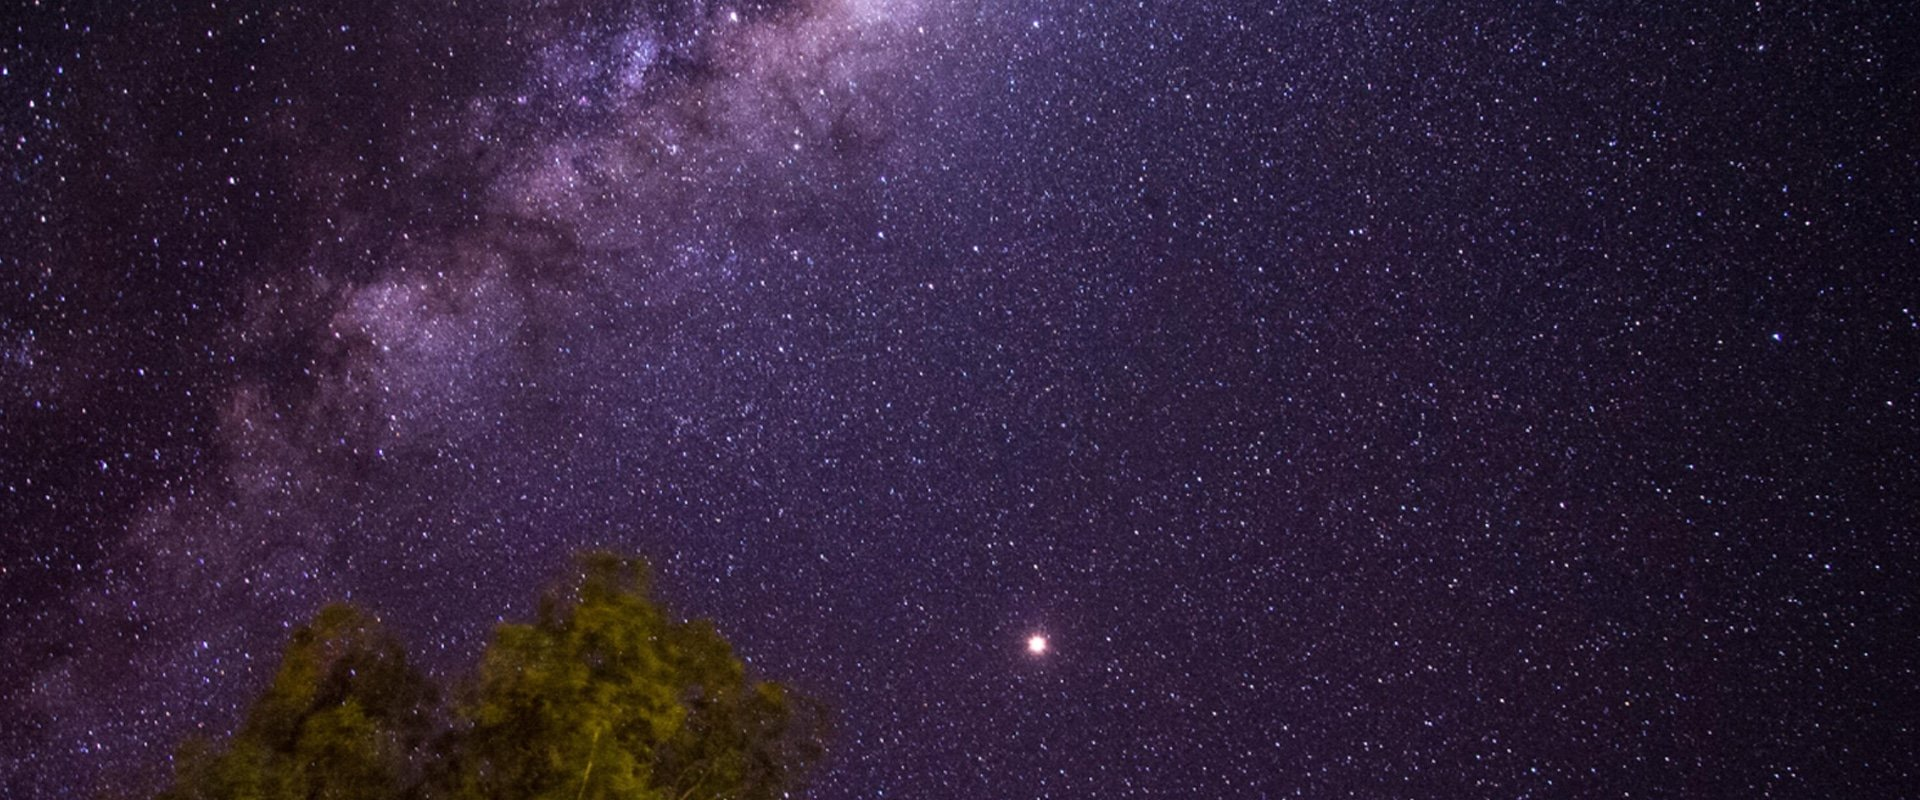 Admire the bright and wondrous South African cosmos